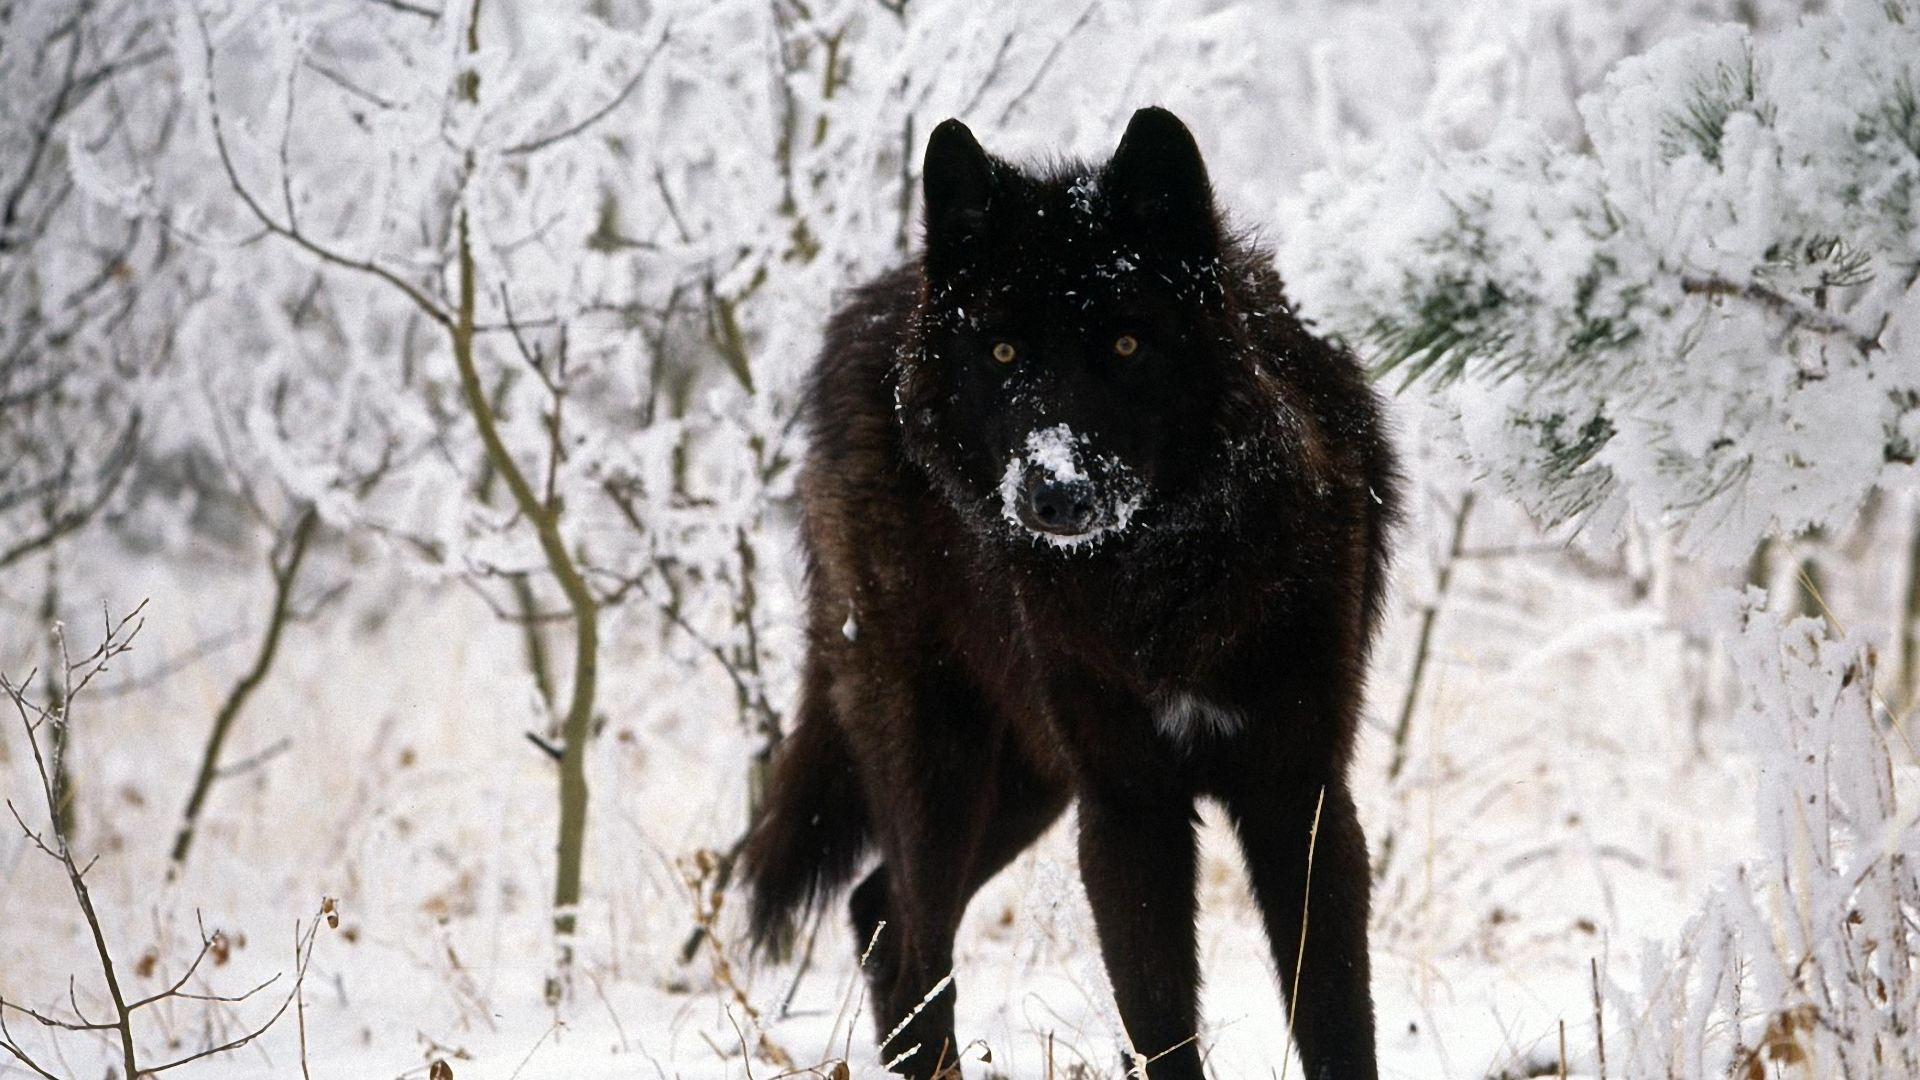 Best ideas about Wolf Wallpaper on Pinterest  Wallpaper art 1920x1080